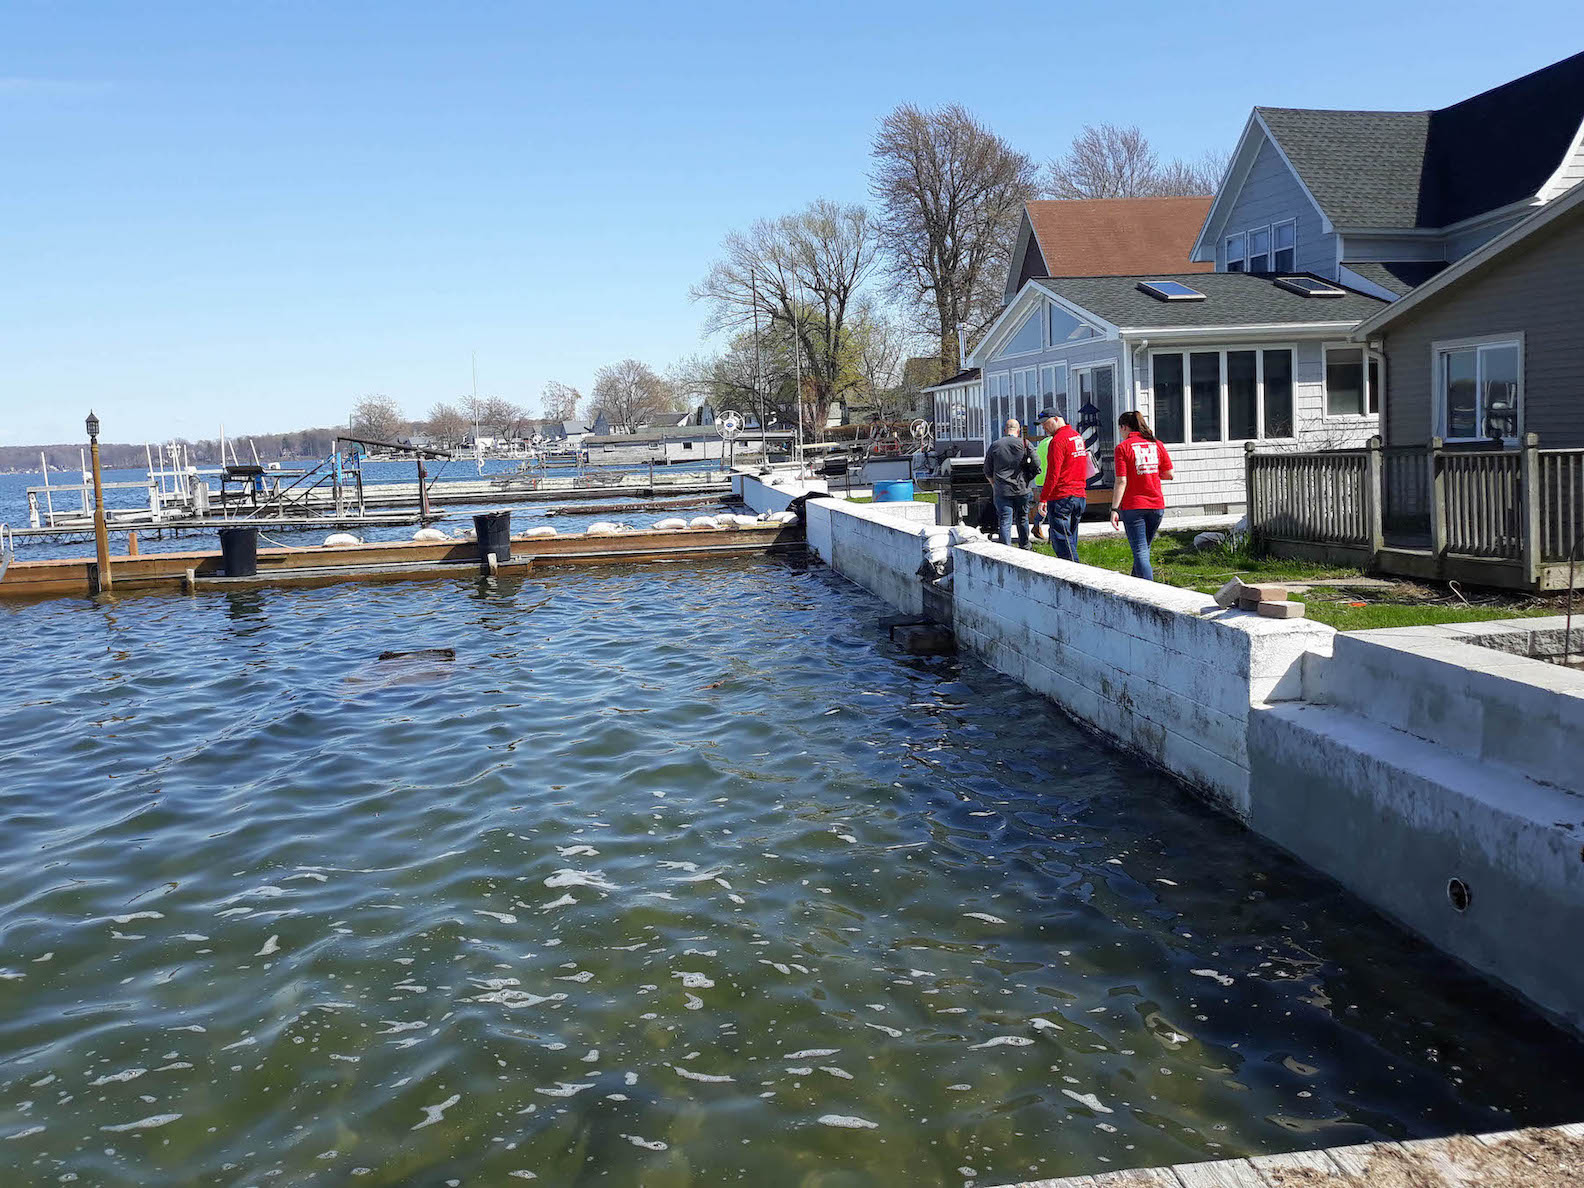 The U.S. Army Corps of Engineers, Buffalo District, deployed a technical team to assist the Village of Sodus with proper sandbag placement. The Village of Sodus requested the Buffalo District's assistance as rising water on Lake Ontario threatens to flood areas of the shoreline. (Photo courtesy of the U.S. Army Corps of Engineers, Buffalo District)